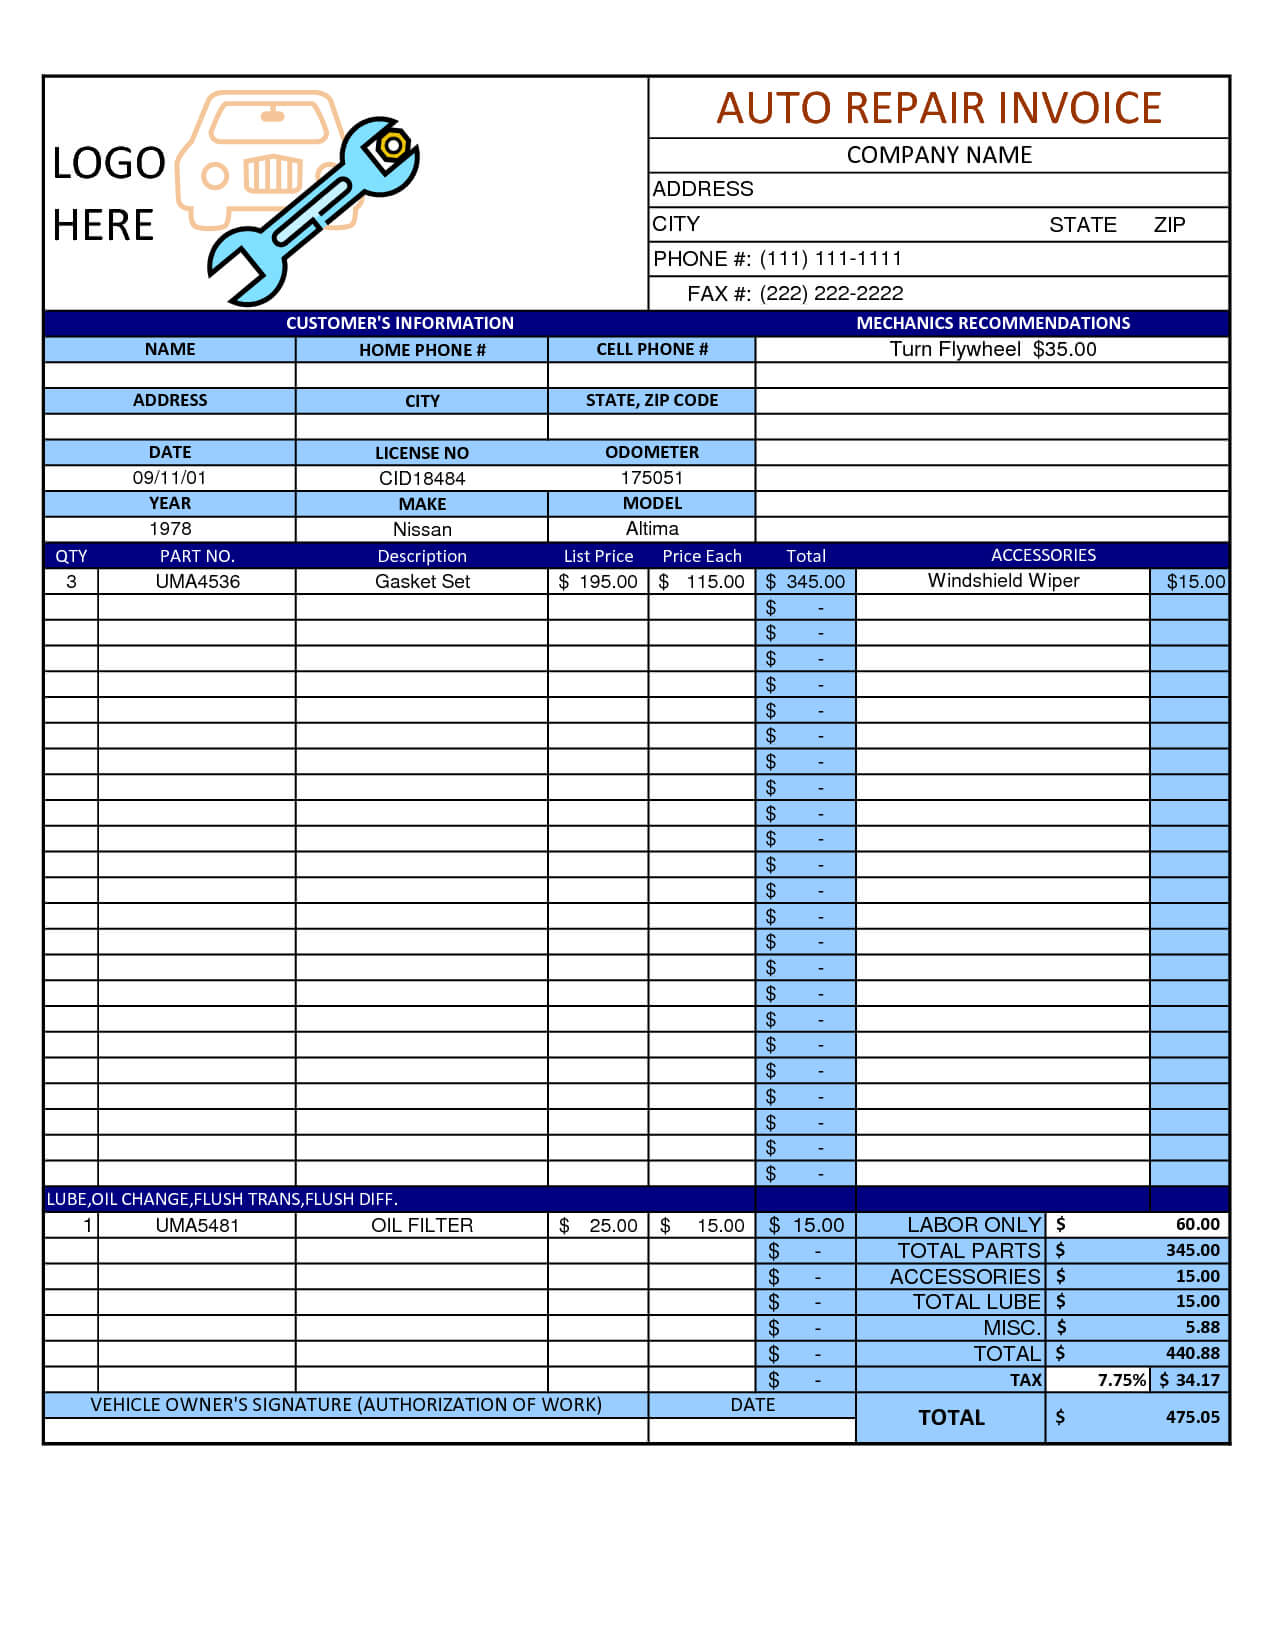 Mechanic Shop Invoice | Scope Of Work Template In 2019 in Job Card Template Mechanic